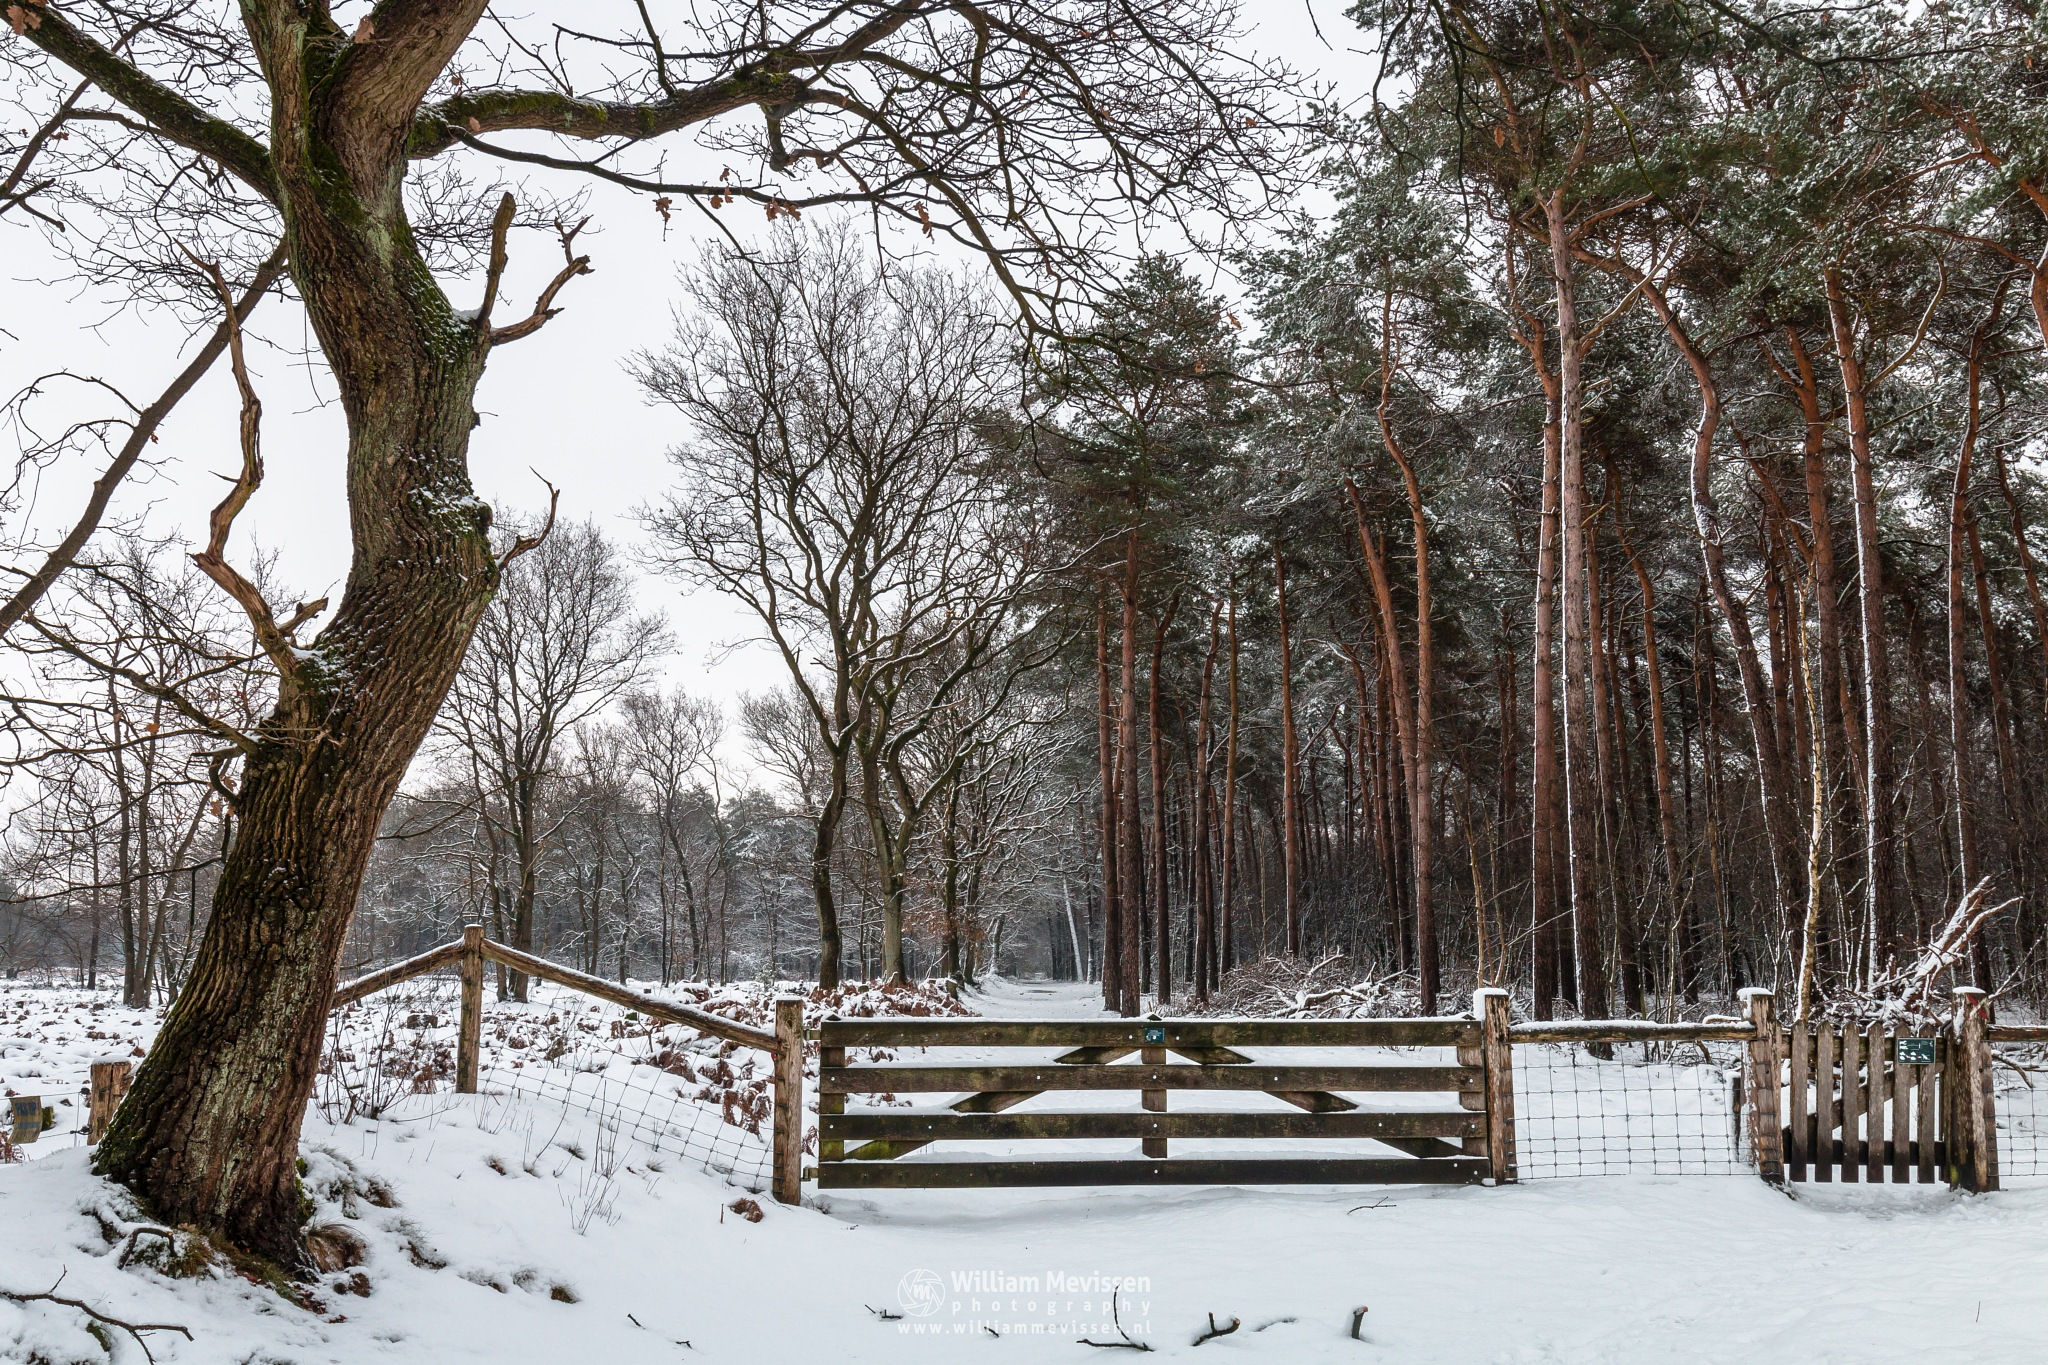 Gate Into The Winter Forest by William Mevissen